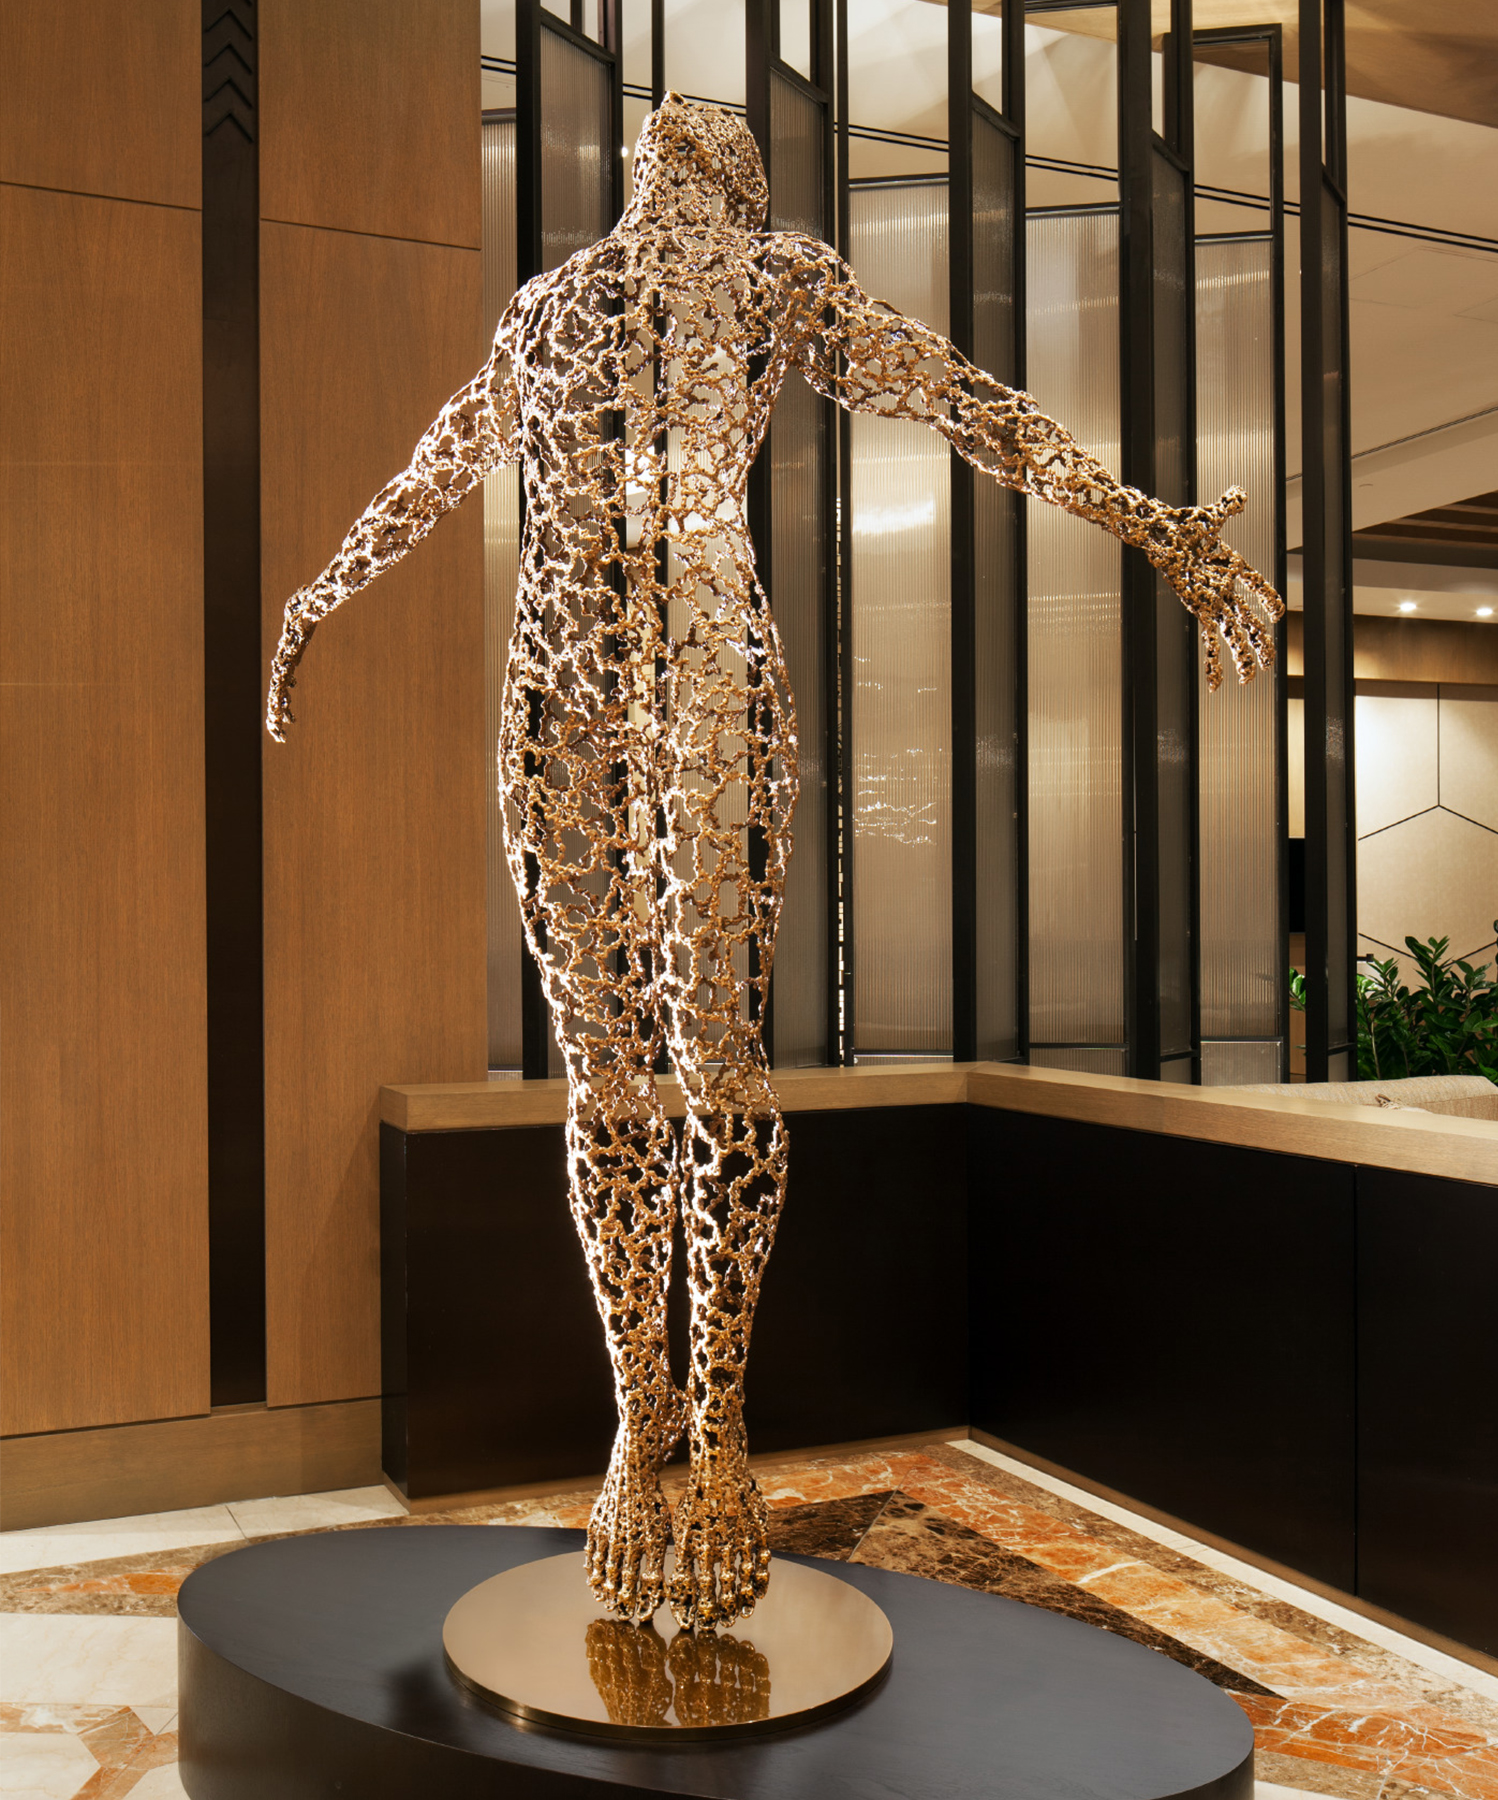 The focal piece in the main lobby is a commissioned metal sculpture.